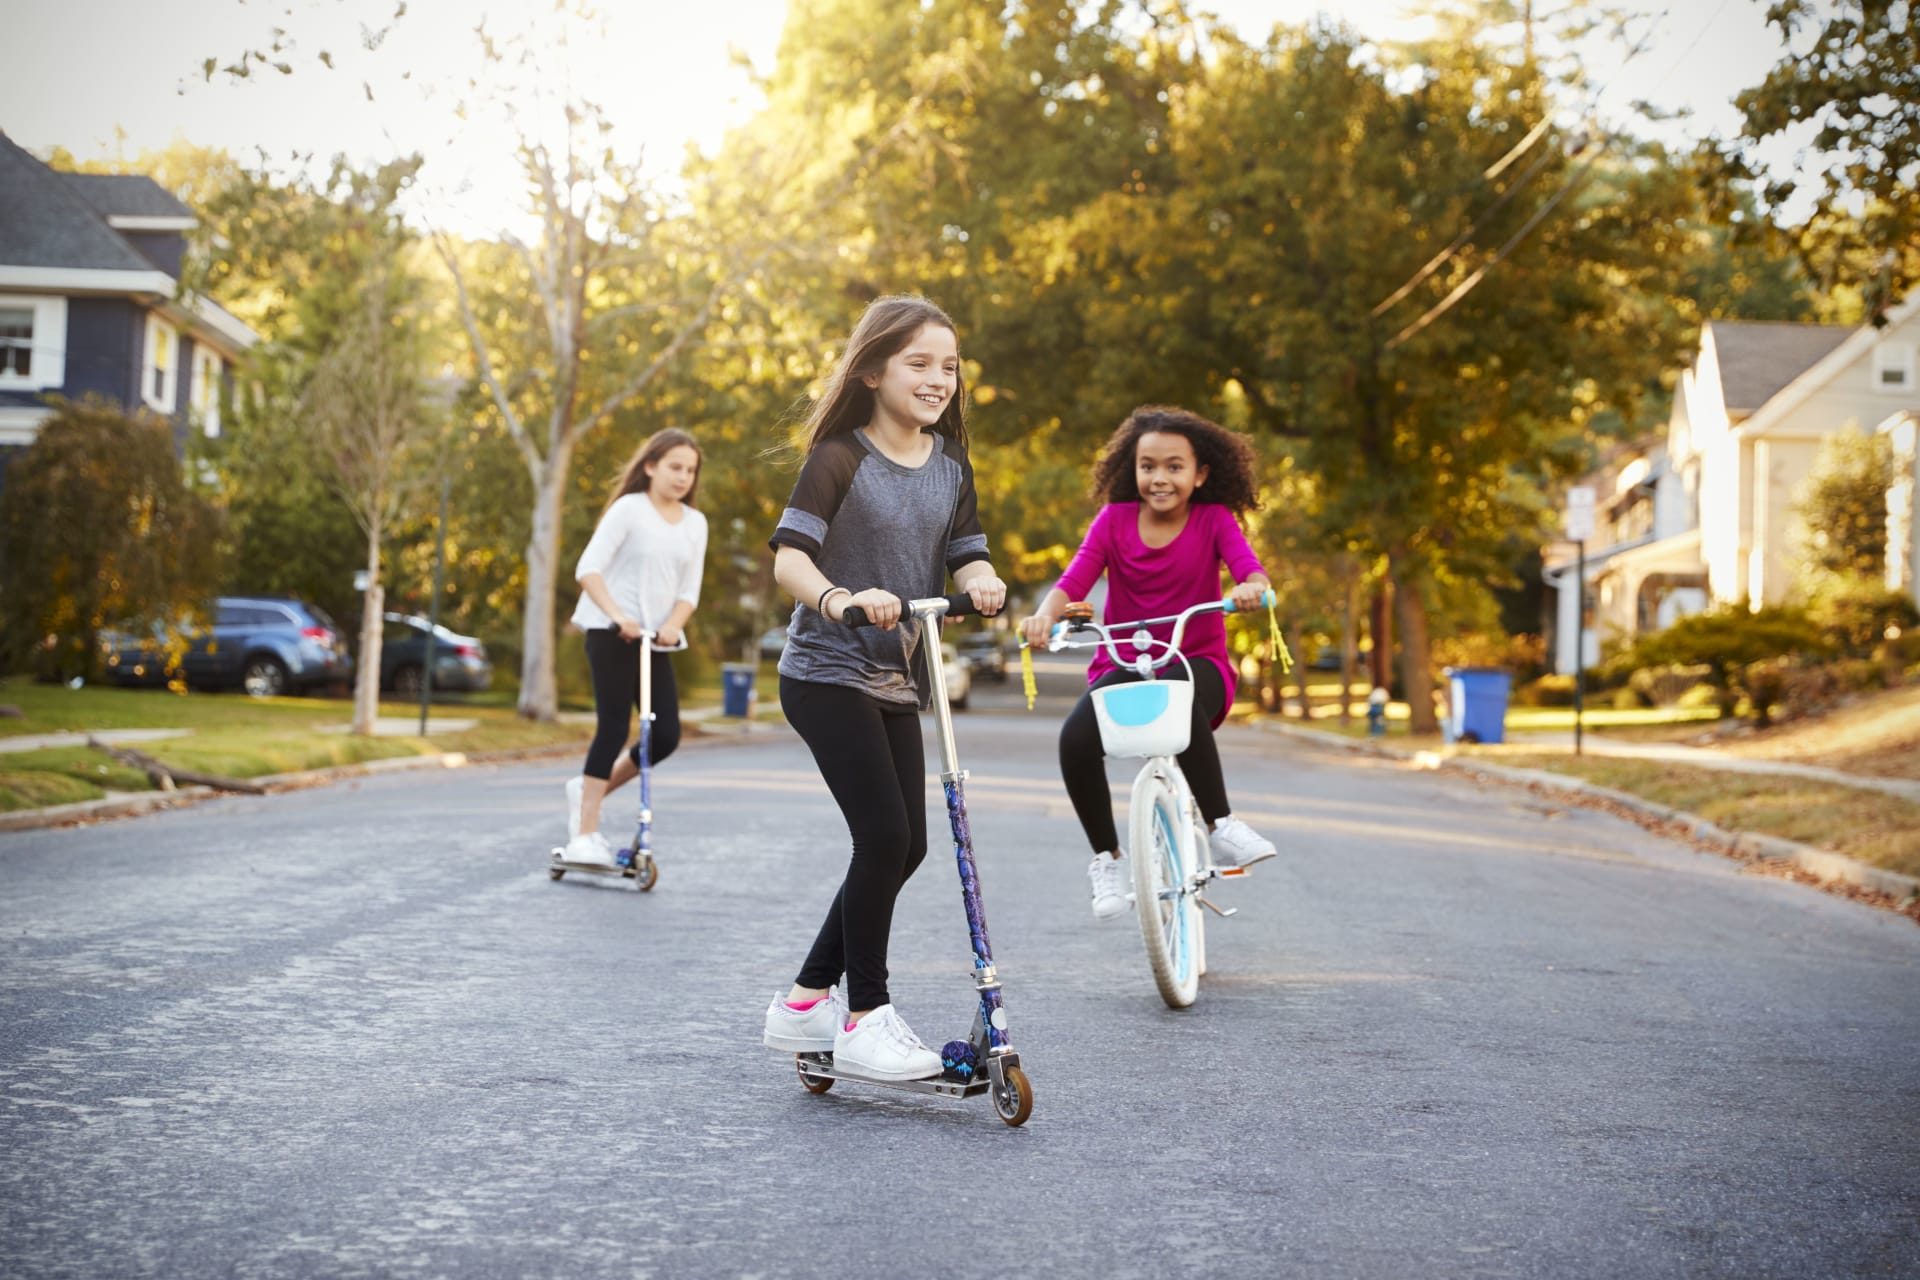 Young girls riding scooters and bicycles